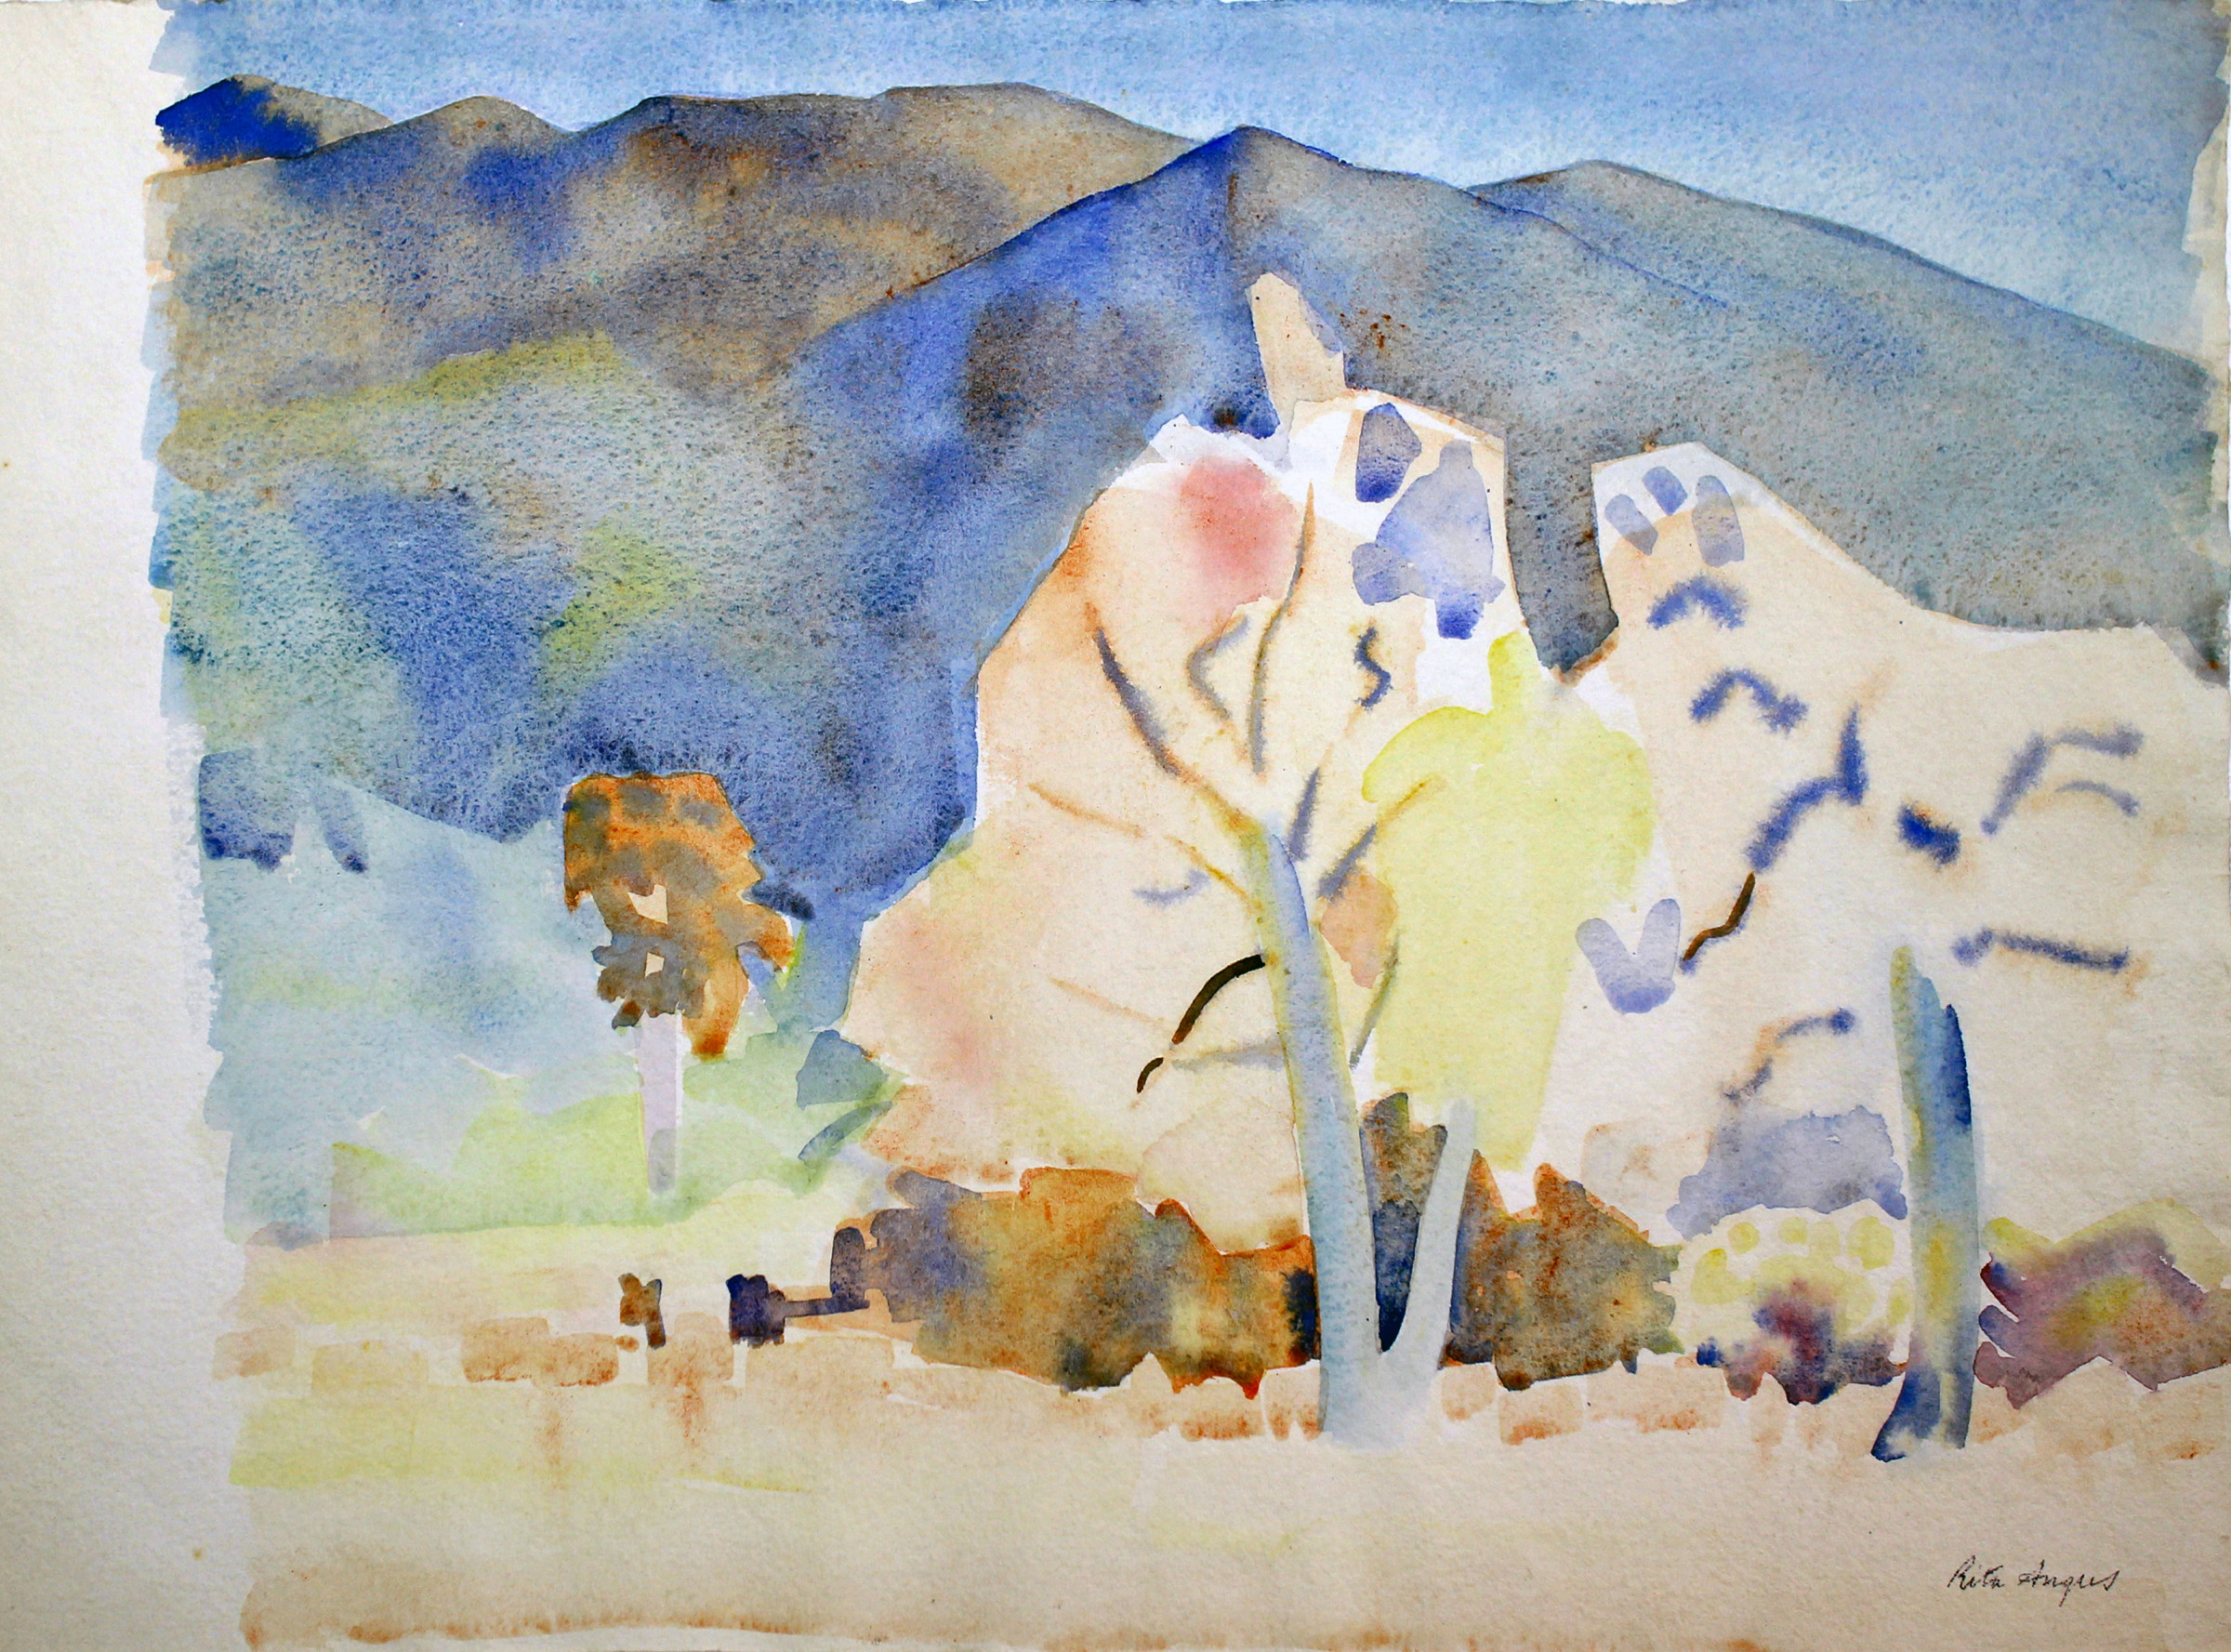 <span class=&#34;link fancybox-details-link&#34;><a href=&#34;/exhibitions/36/works/artworks6389/&#34;>View Detail Page</a></span><div class=&#34;medium&#34;>Watercolour on paper</div> <div class=&#34;dimensions&#34;>11.2 x 15.4 in<br />28.5 x 39.2 cm</div>